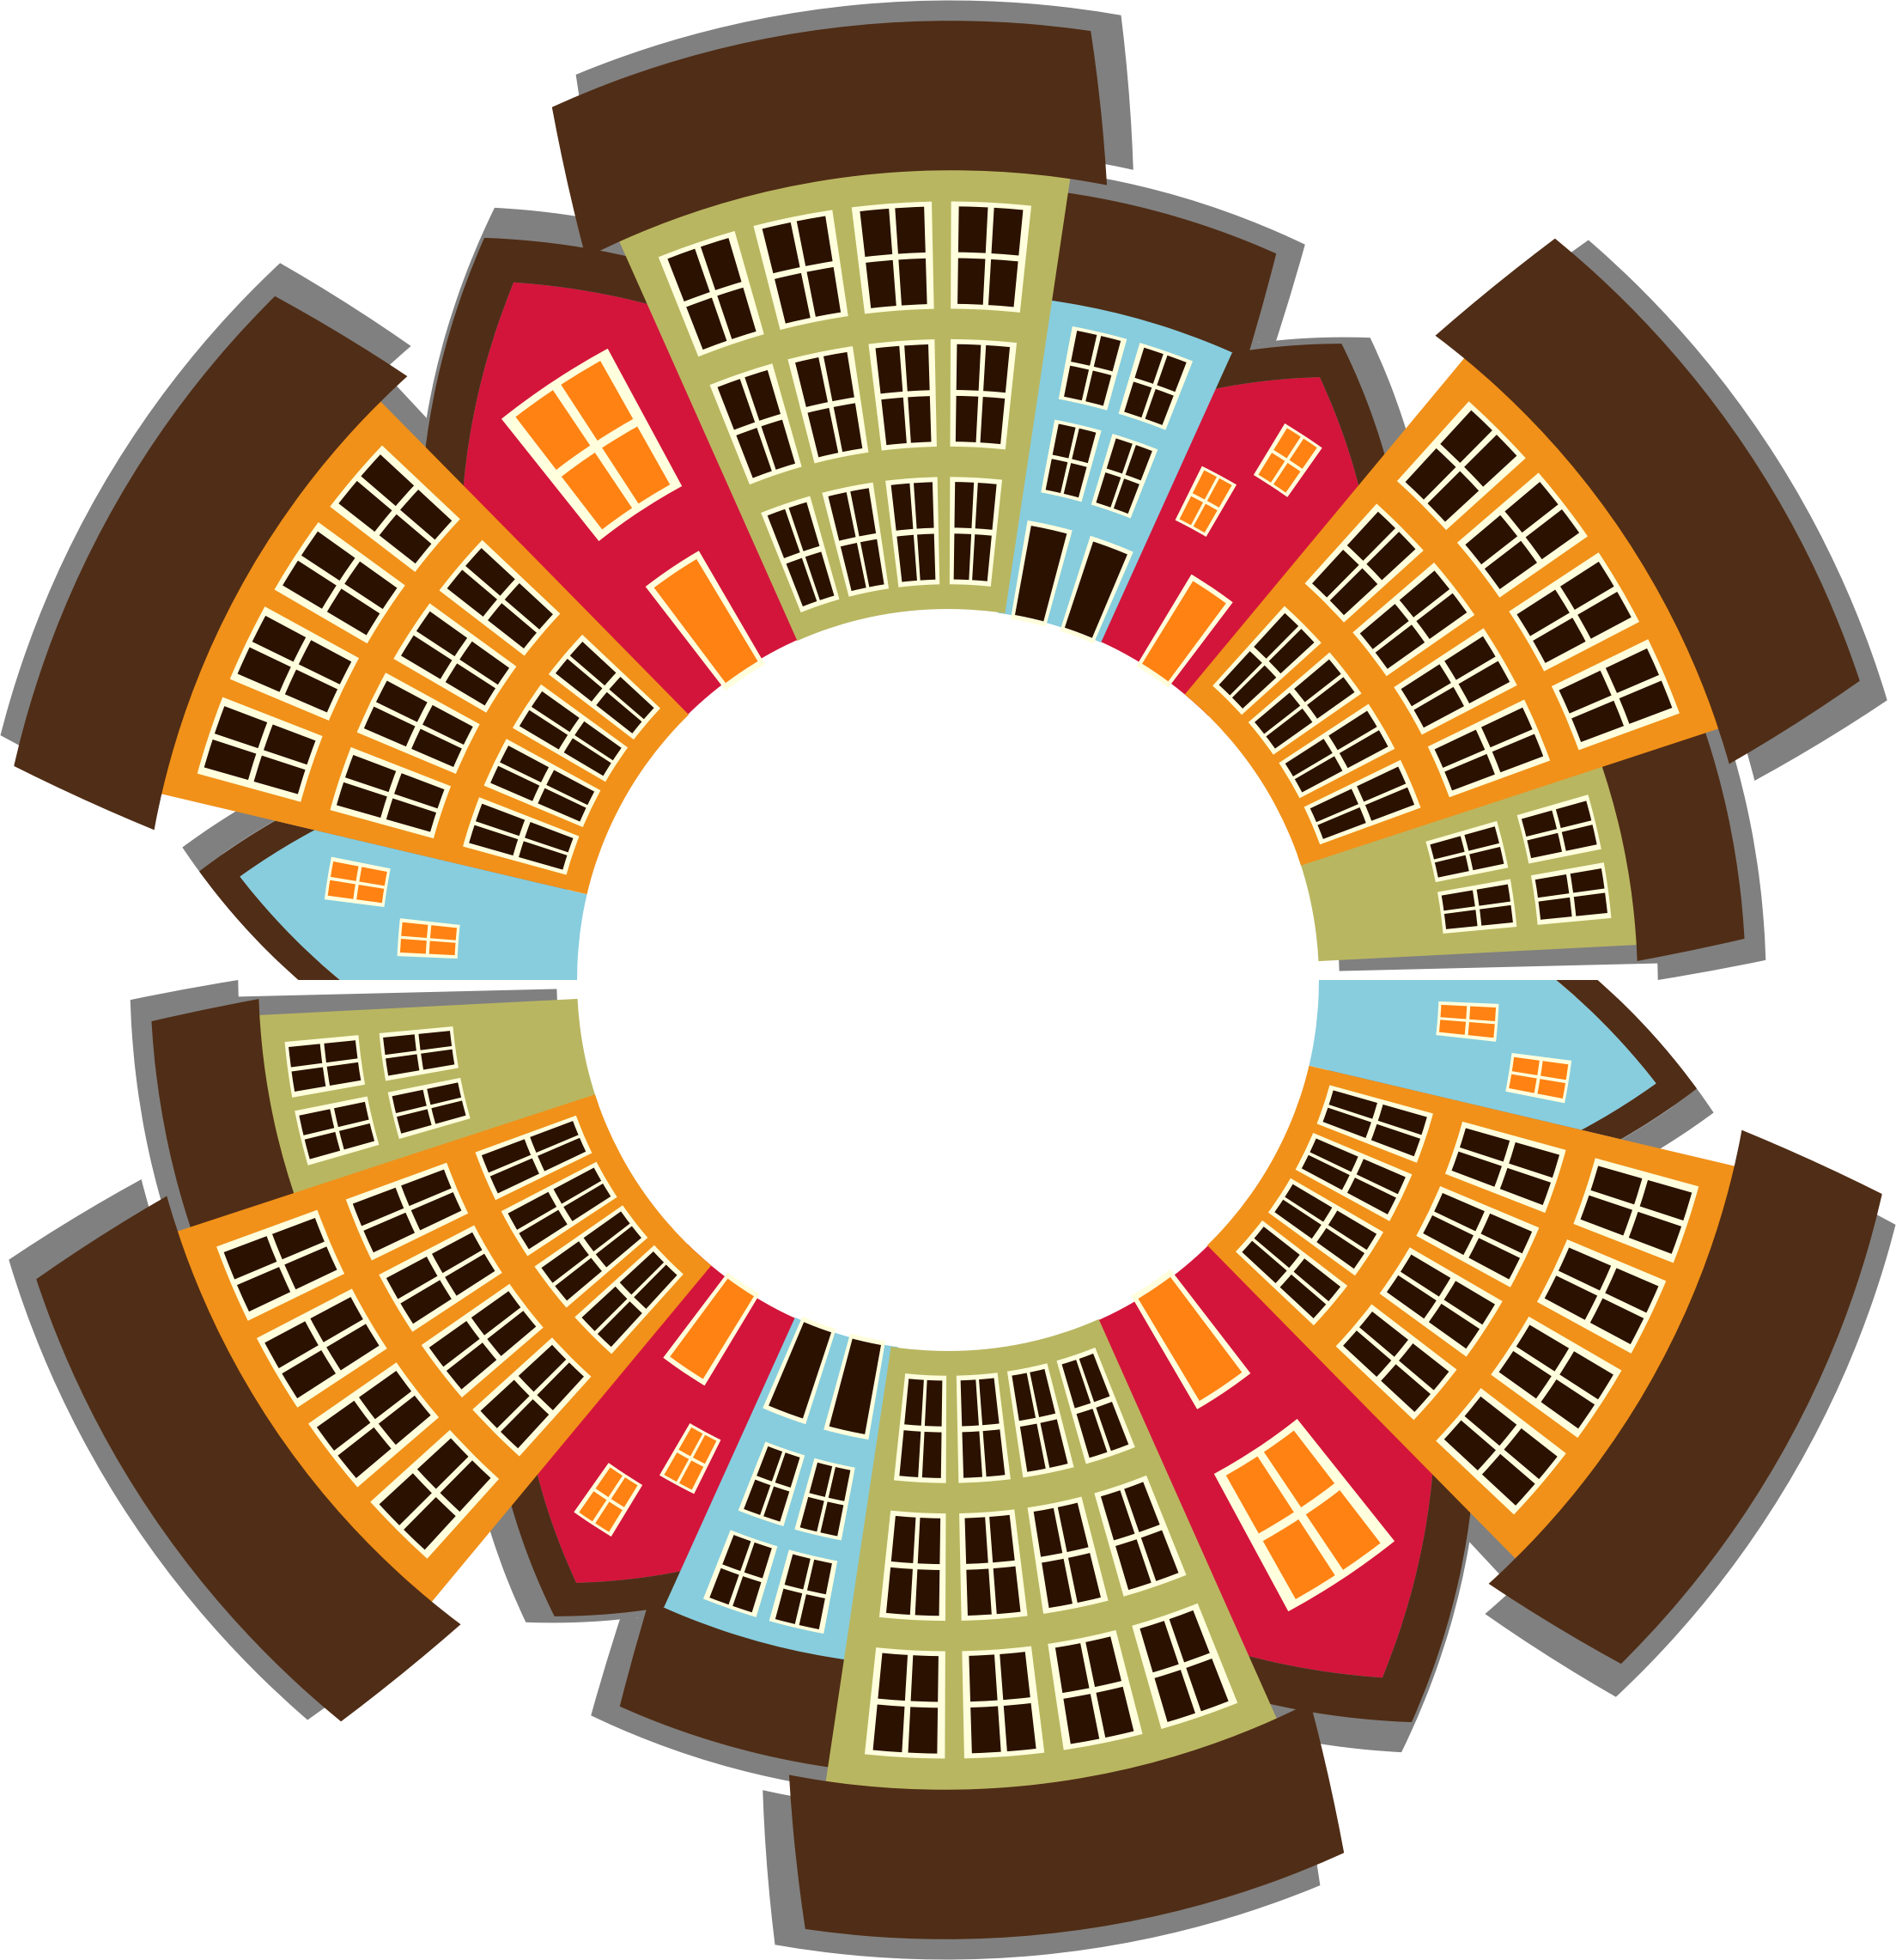 Holidays clipart casino. Small town cityscape radial